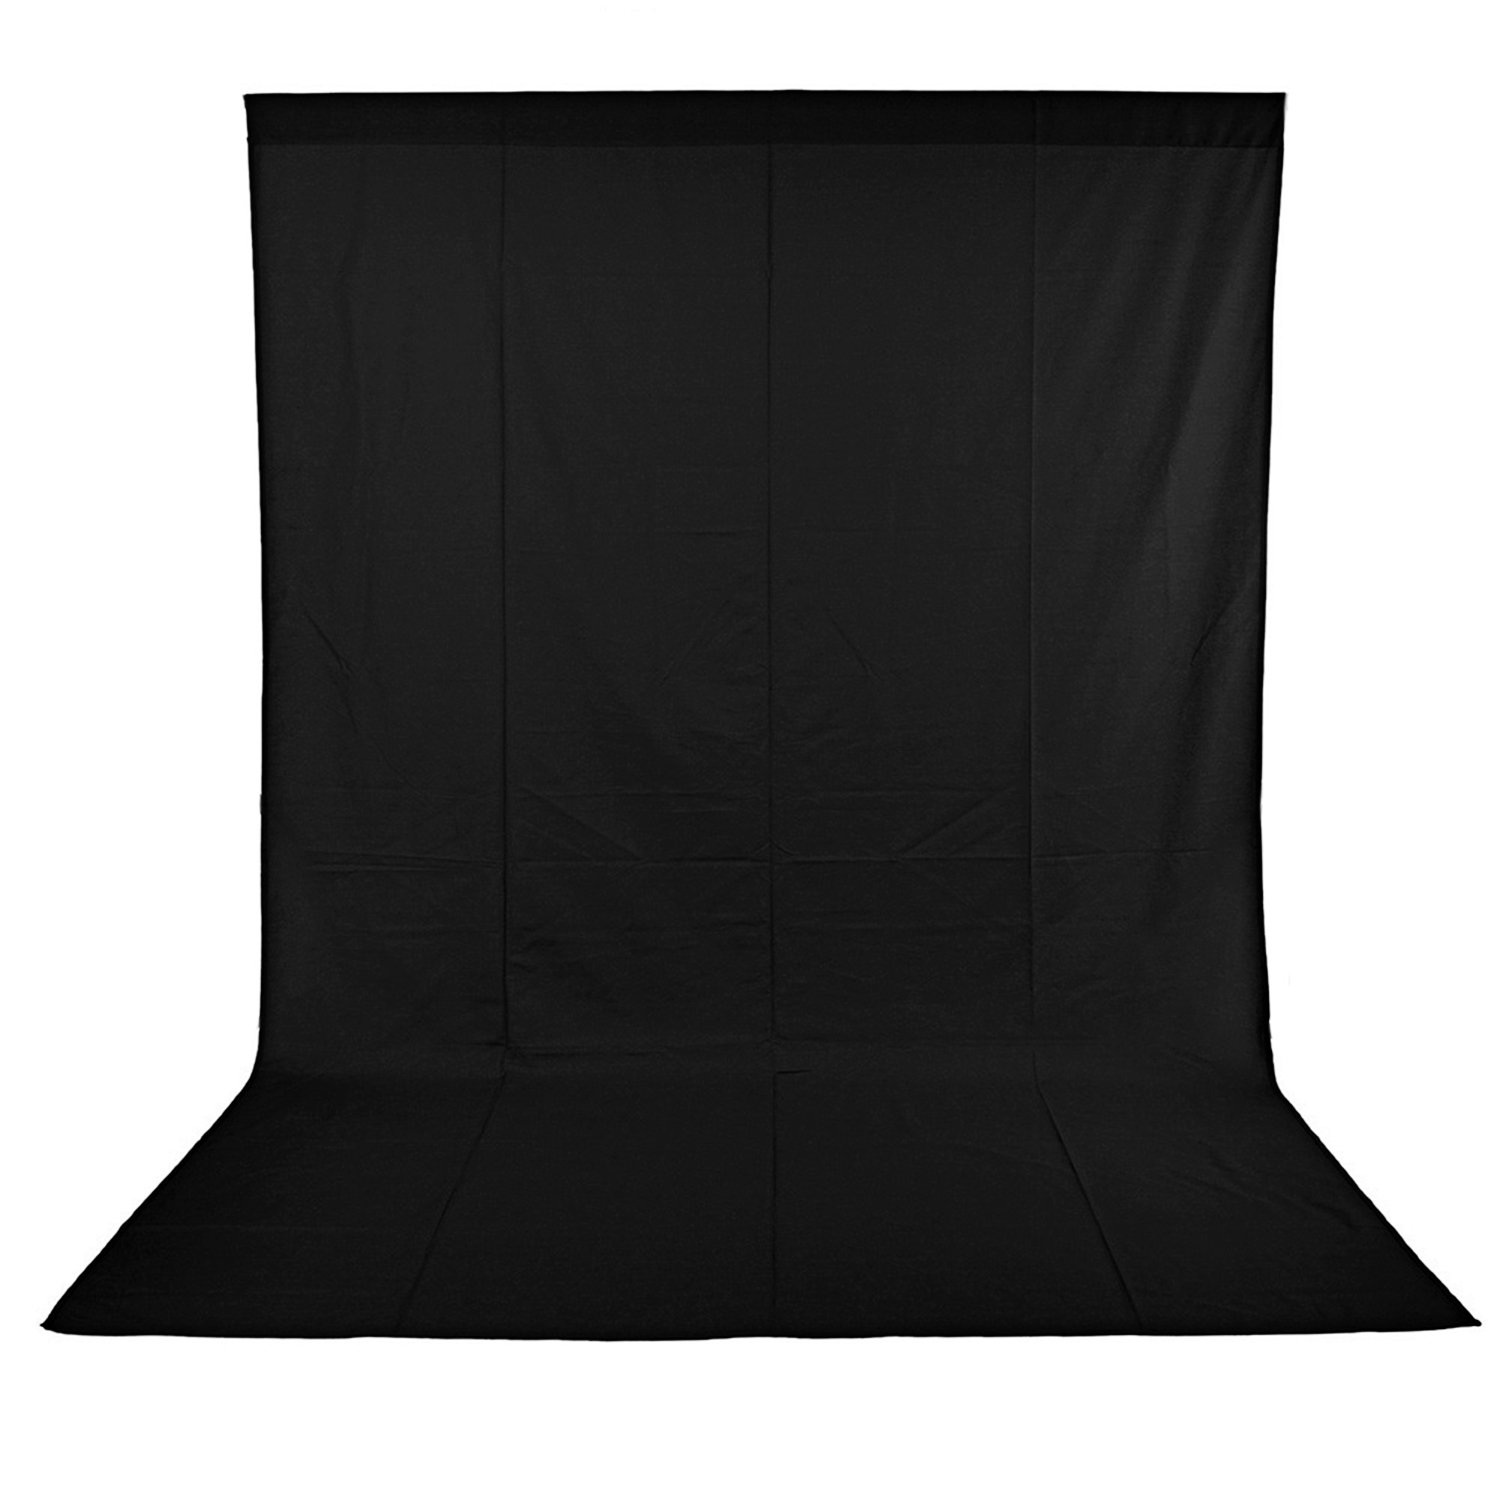 Neewer 6x9 feet/1.8x2.8 meters Photo Studio 100 Percent Pure